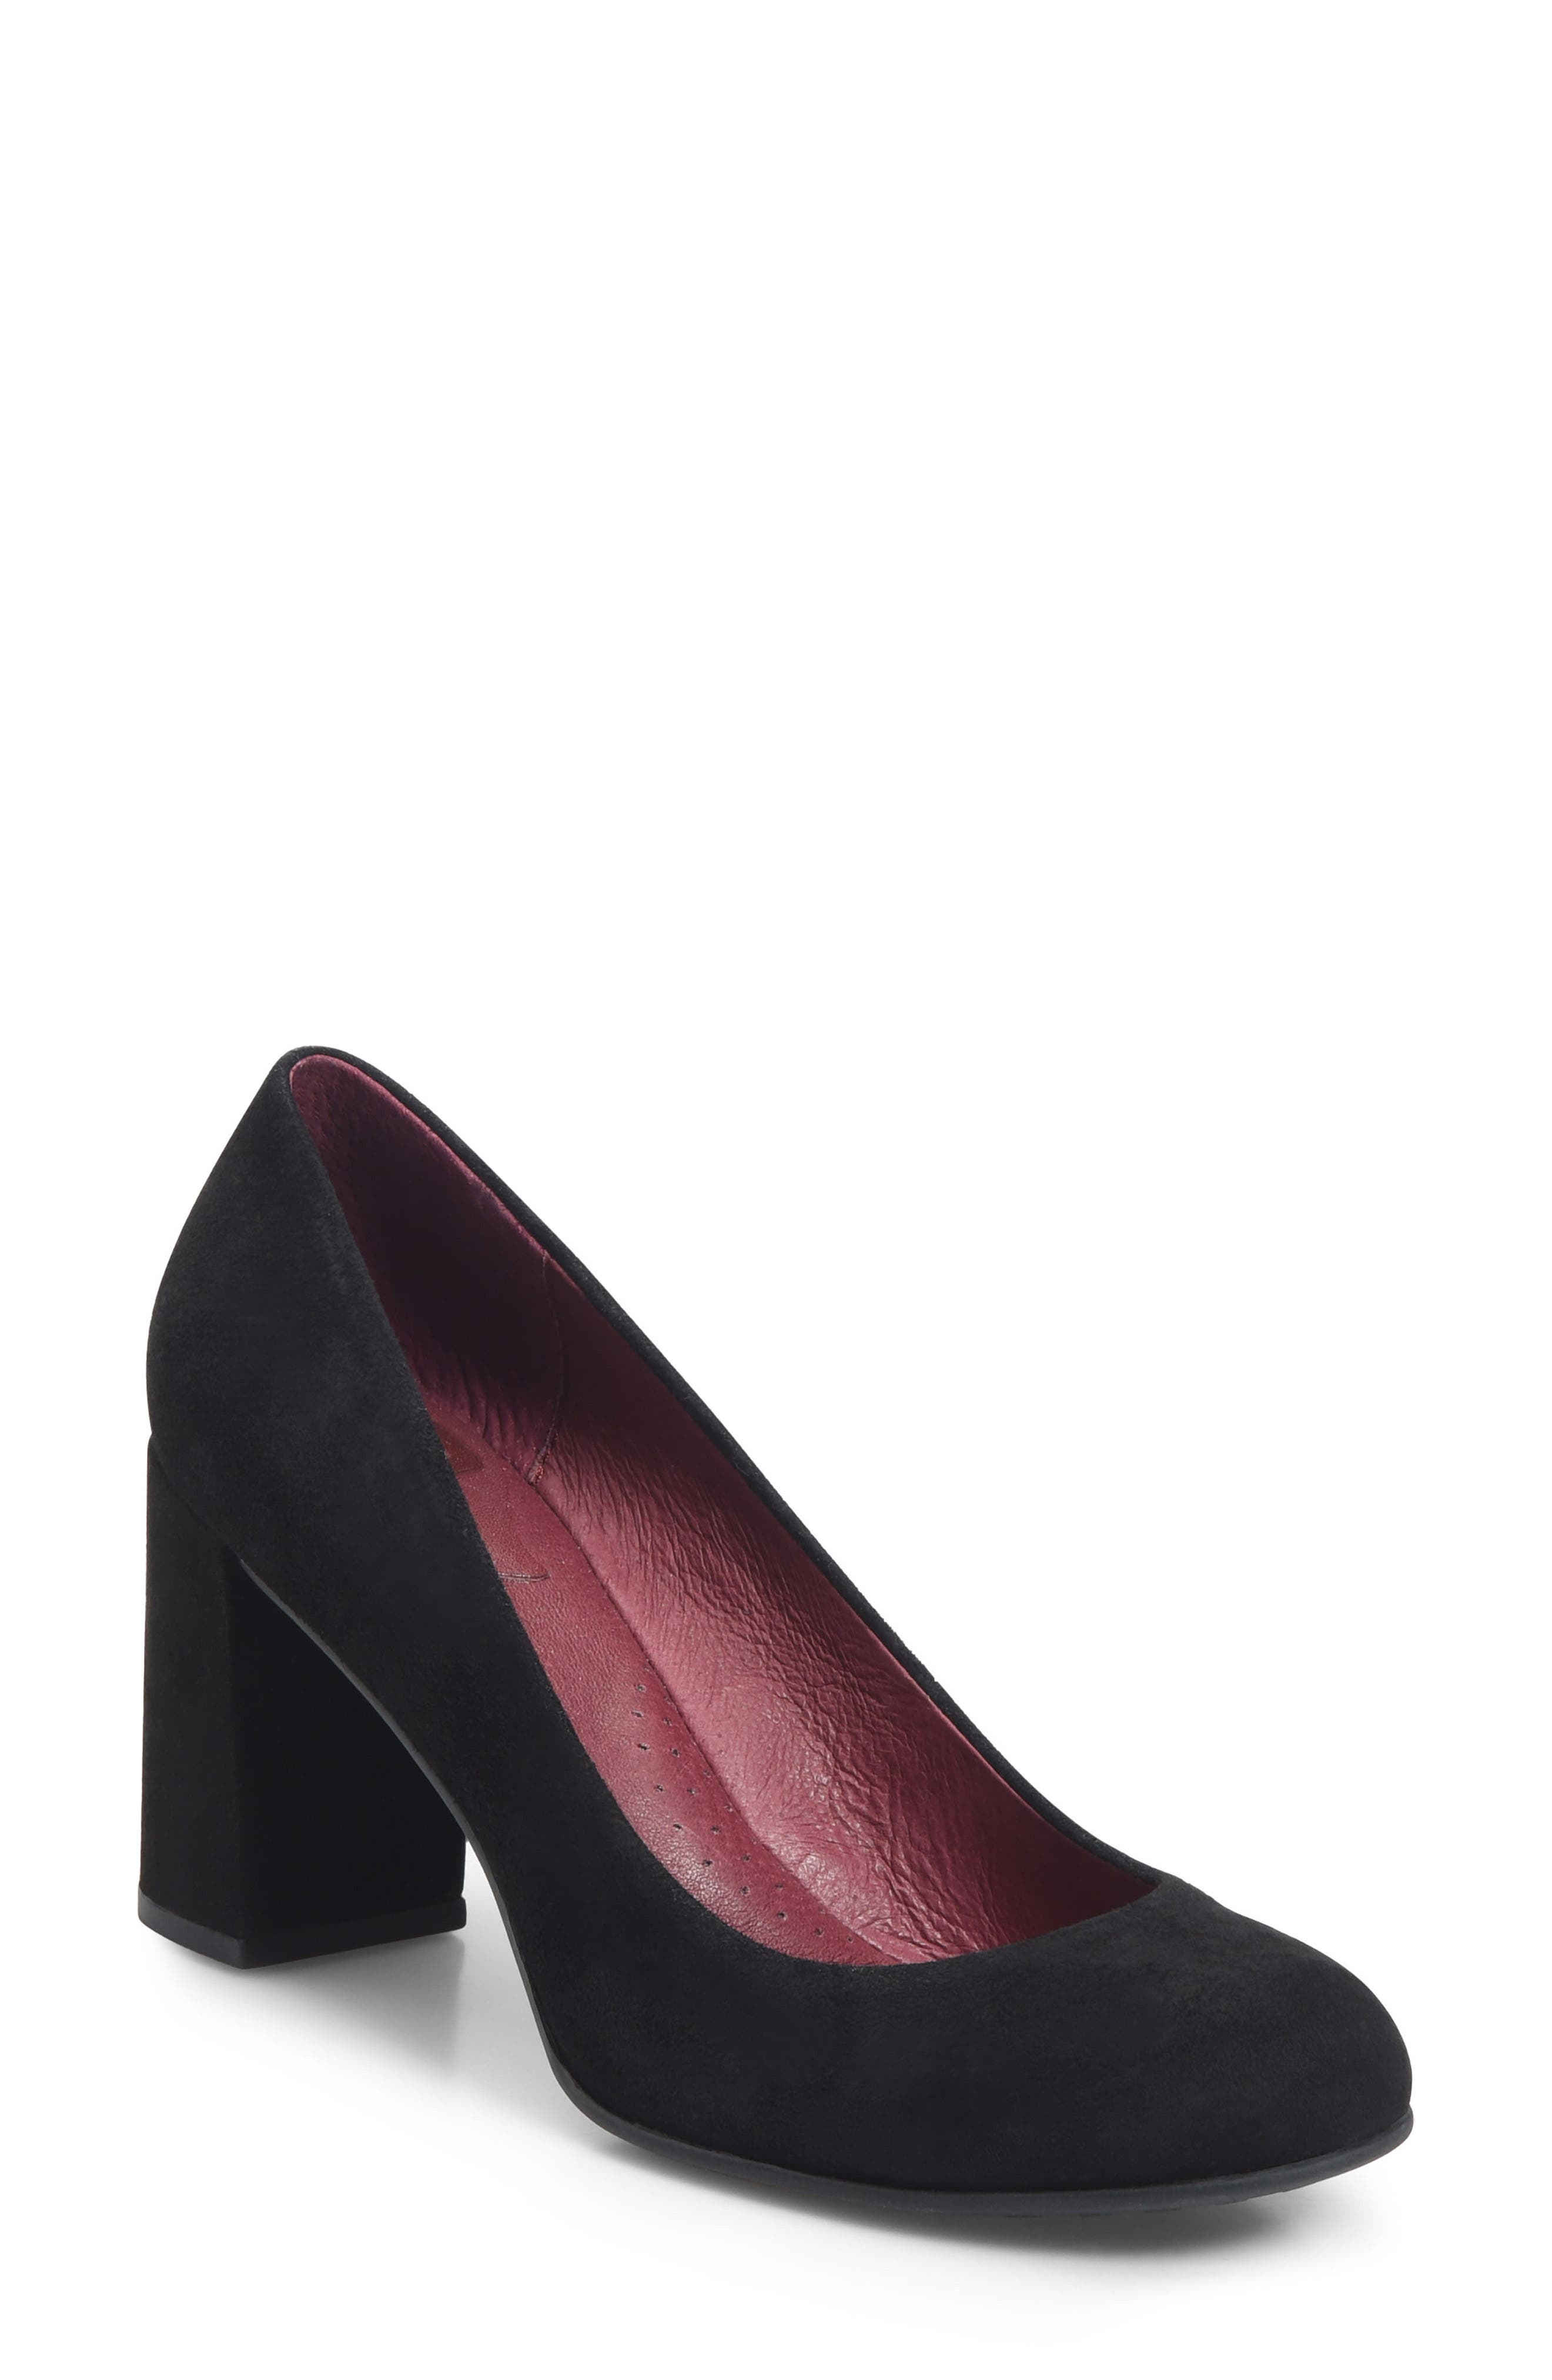 Alpena Block Heel Pump,                         Main,                         color, BLACK SUEDE